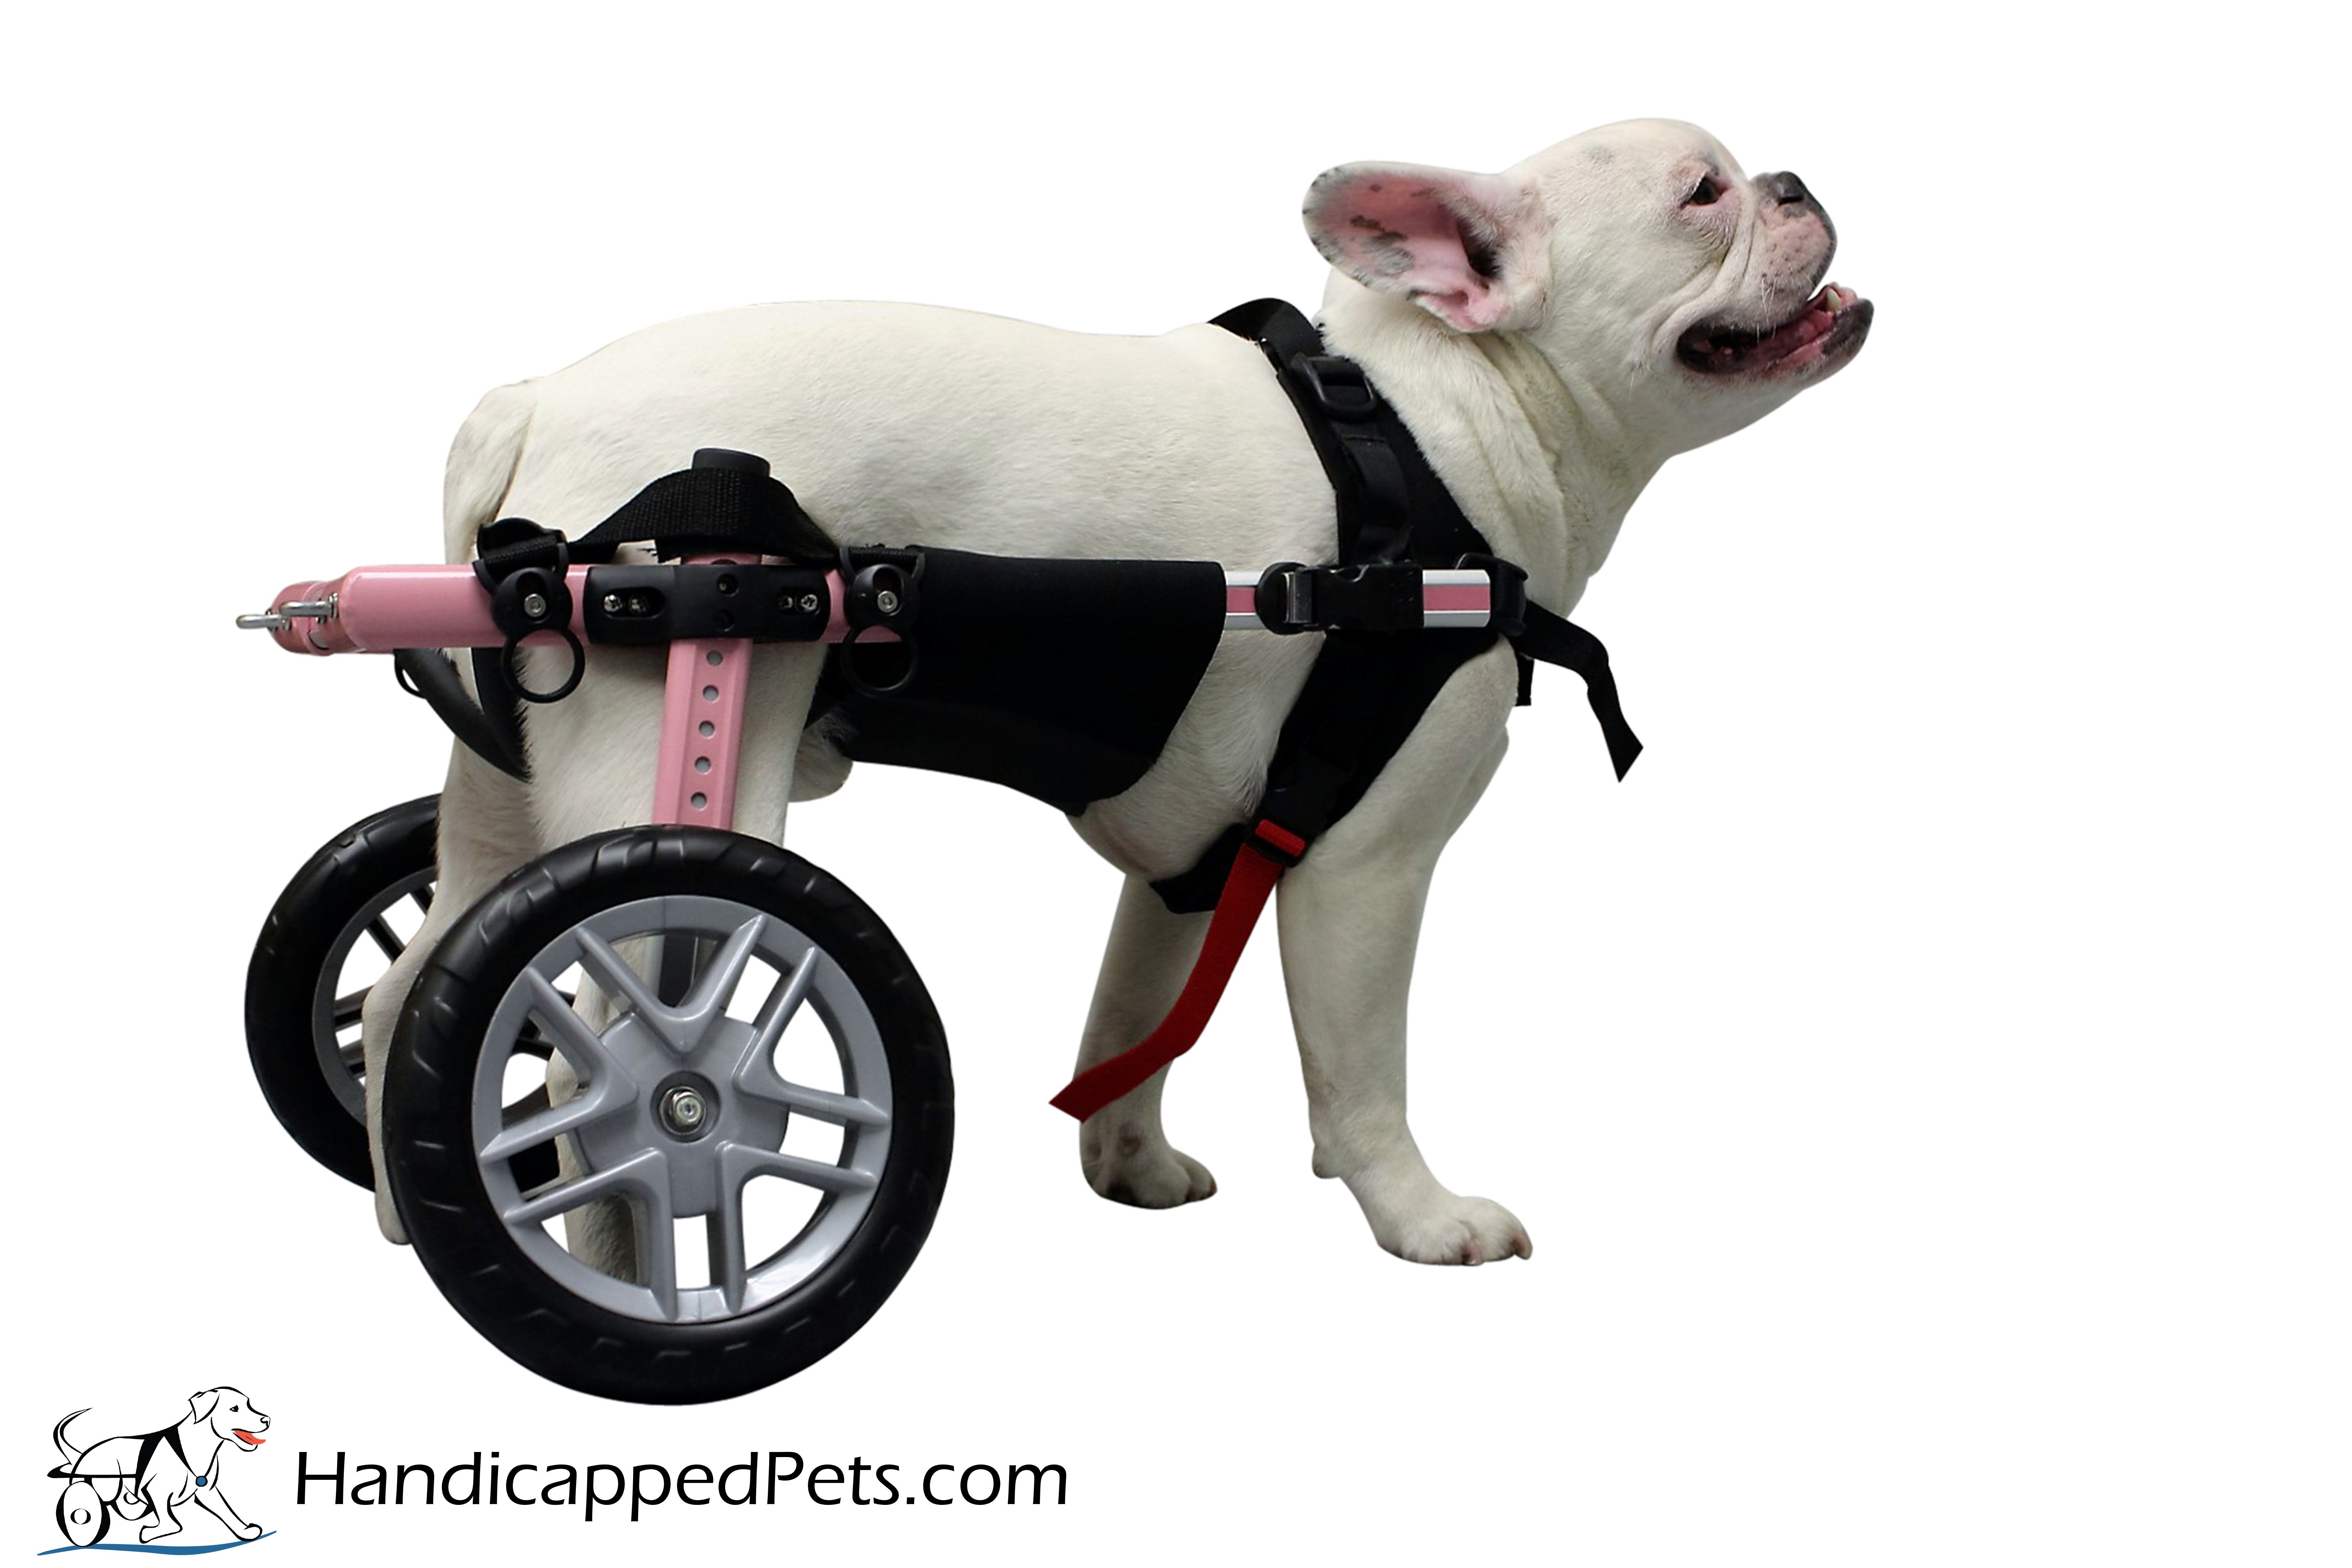 Dog Wheelchair Support Dog Wheelchairs Dog Carts Handicapped Pets Canada Support Dog Dog Wheelchair Pets